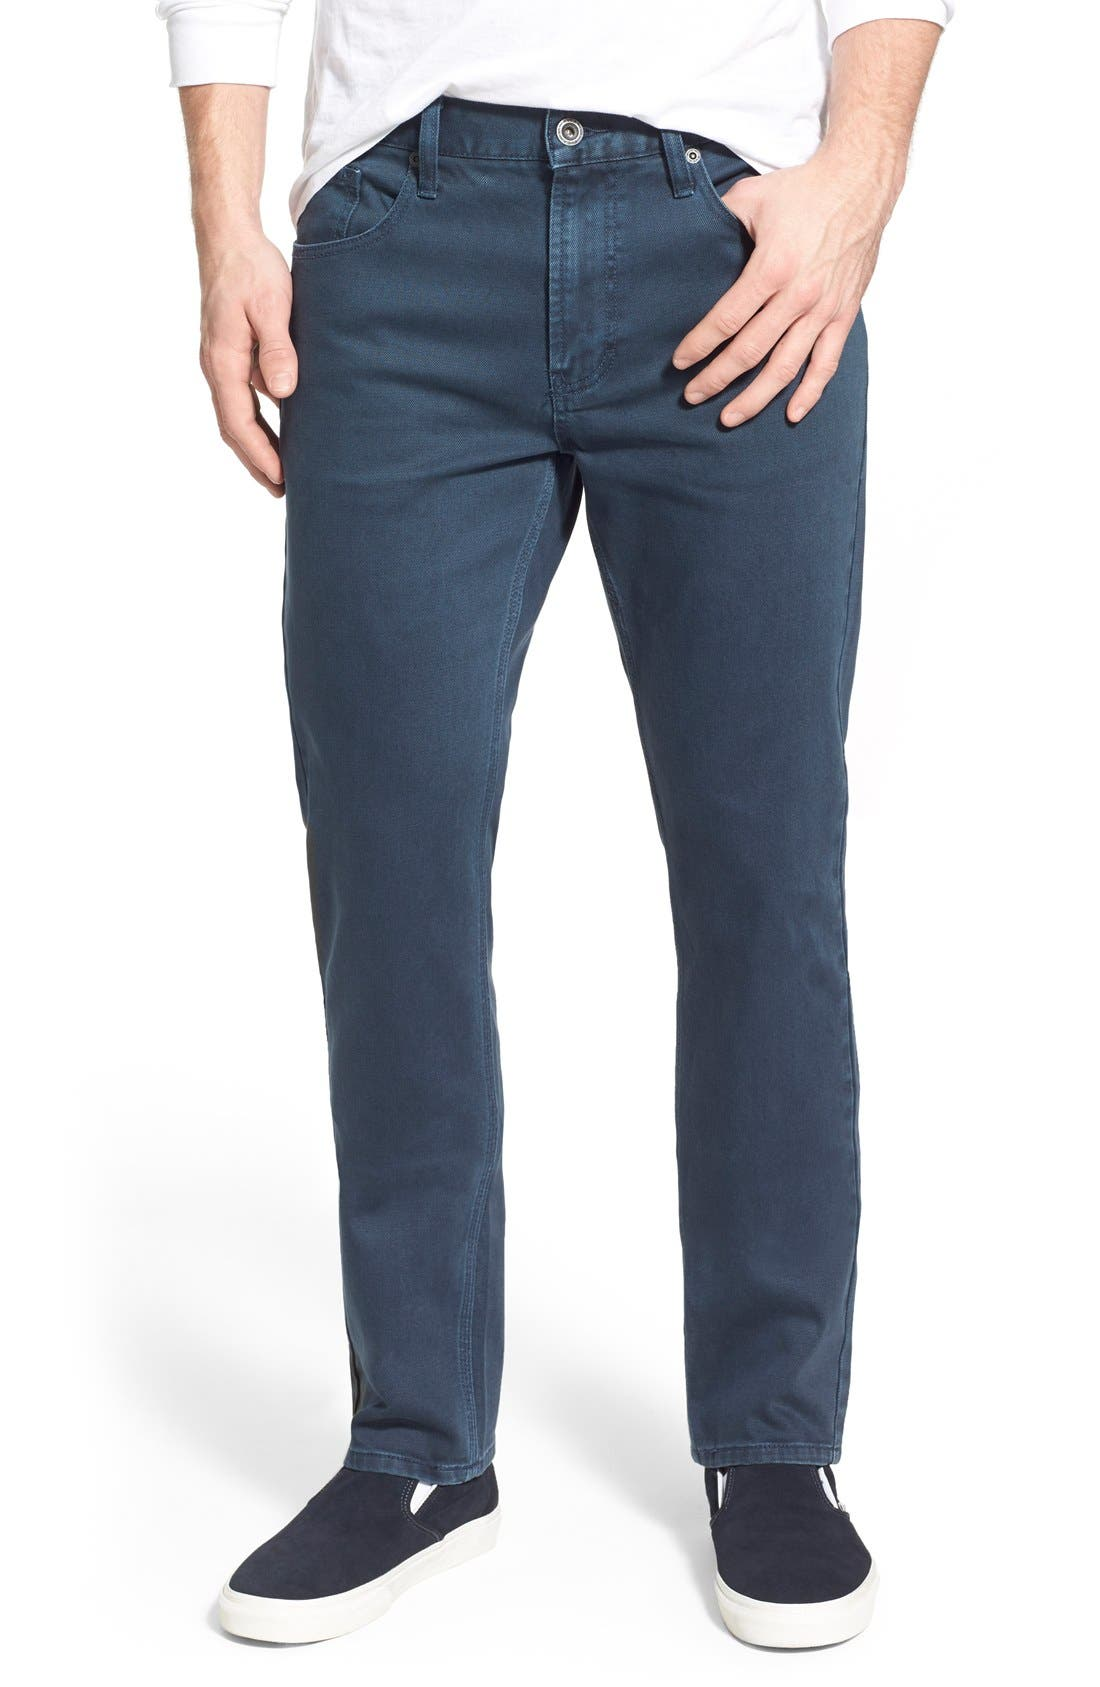 Alternate Image 1 Selected - RVCA 'Daggers' Slim Fit Jeans (Army Drab)